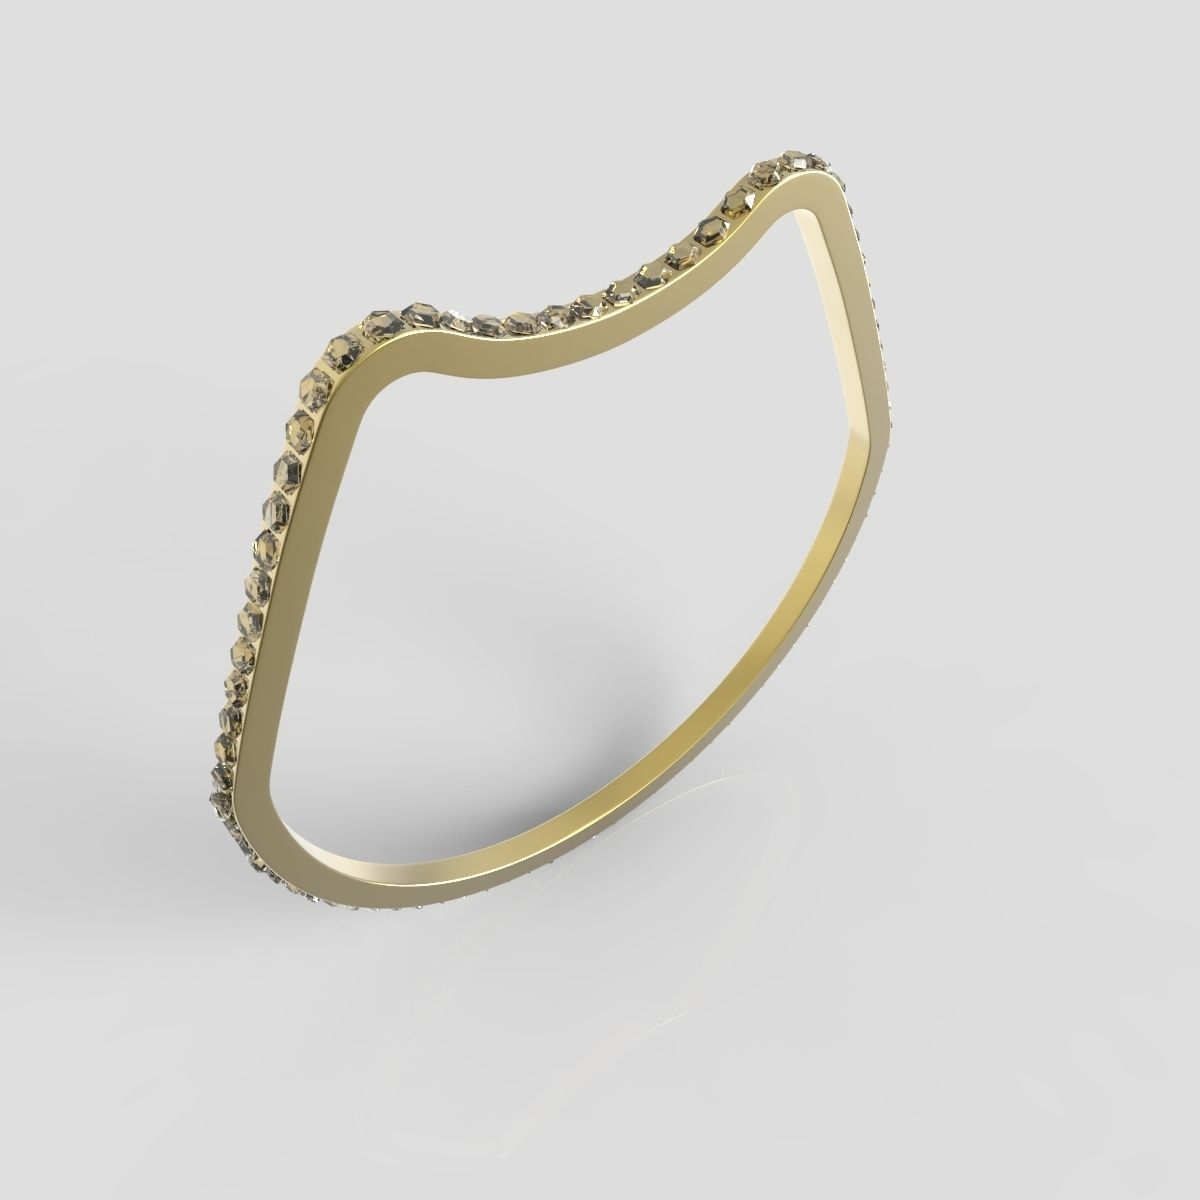 Gold ring 01 free 3d model 3d printable obj stl cgtradercom for Gold ring models with letters